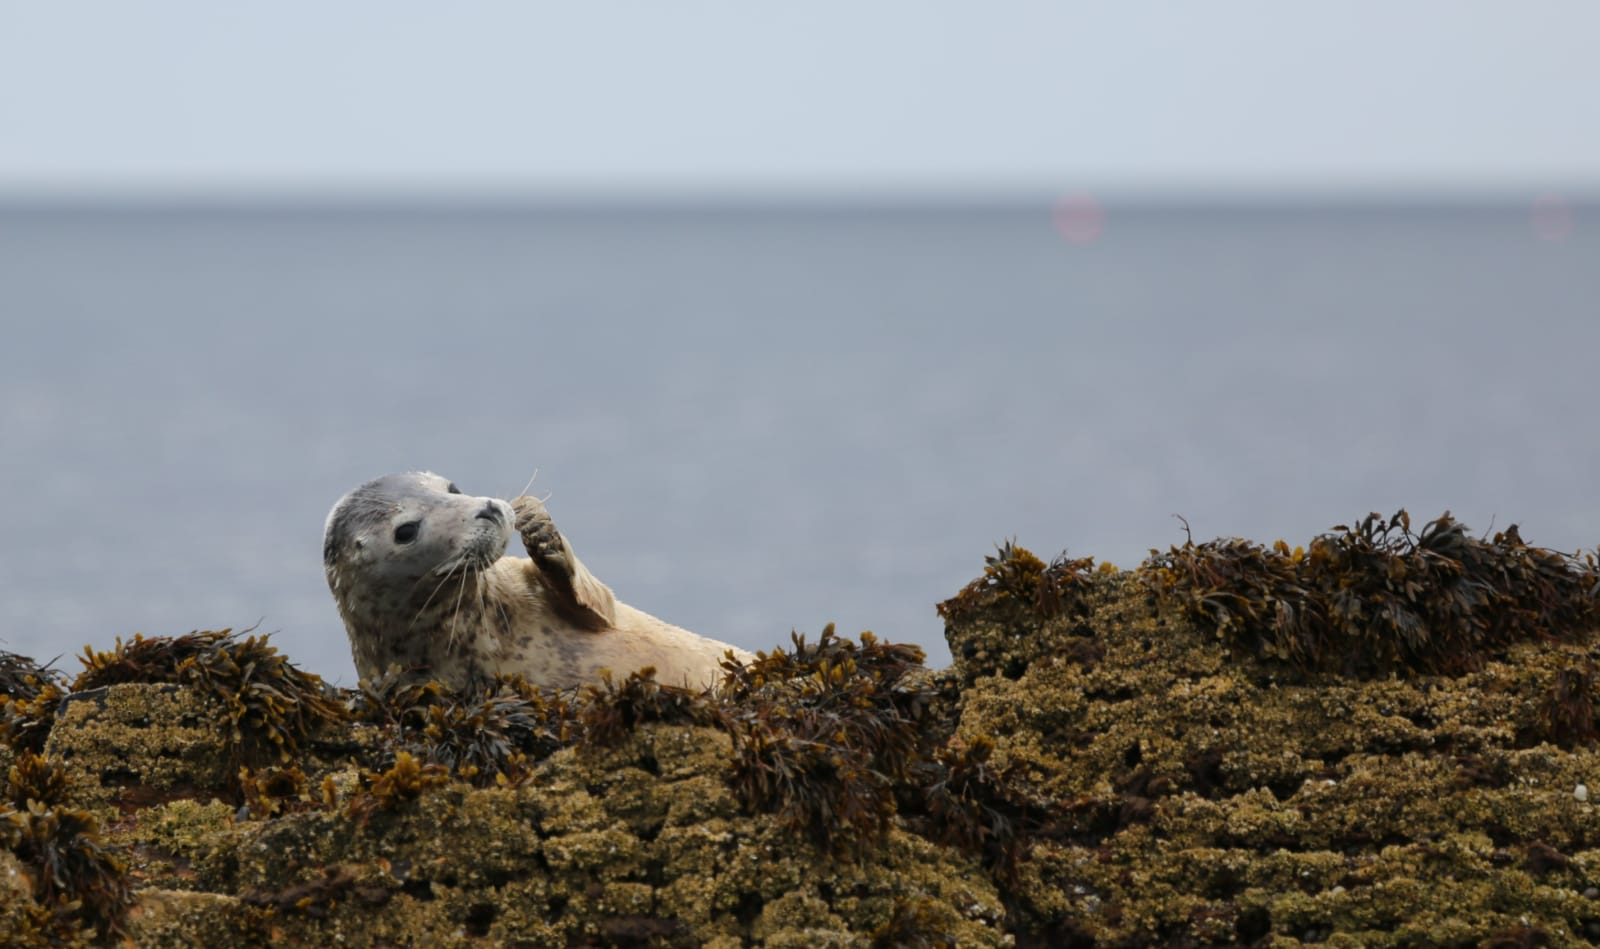 Photograph of an Orkney seal